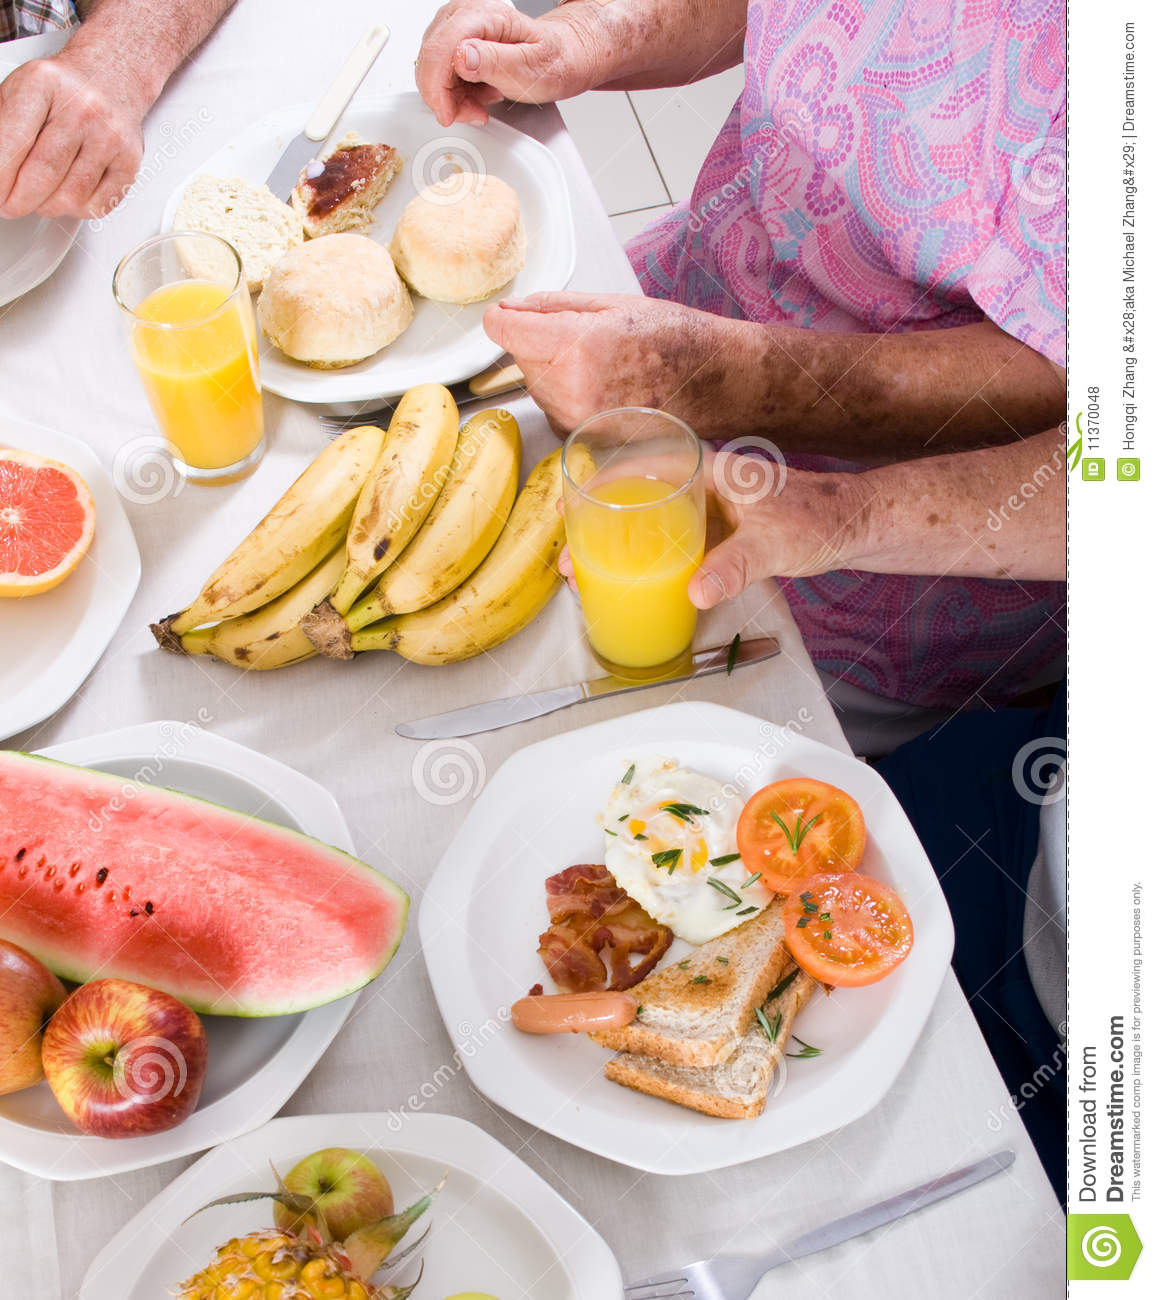 Download Breakfast stock photo. Image of health, elderly, family - 11370048